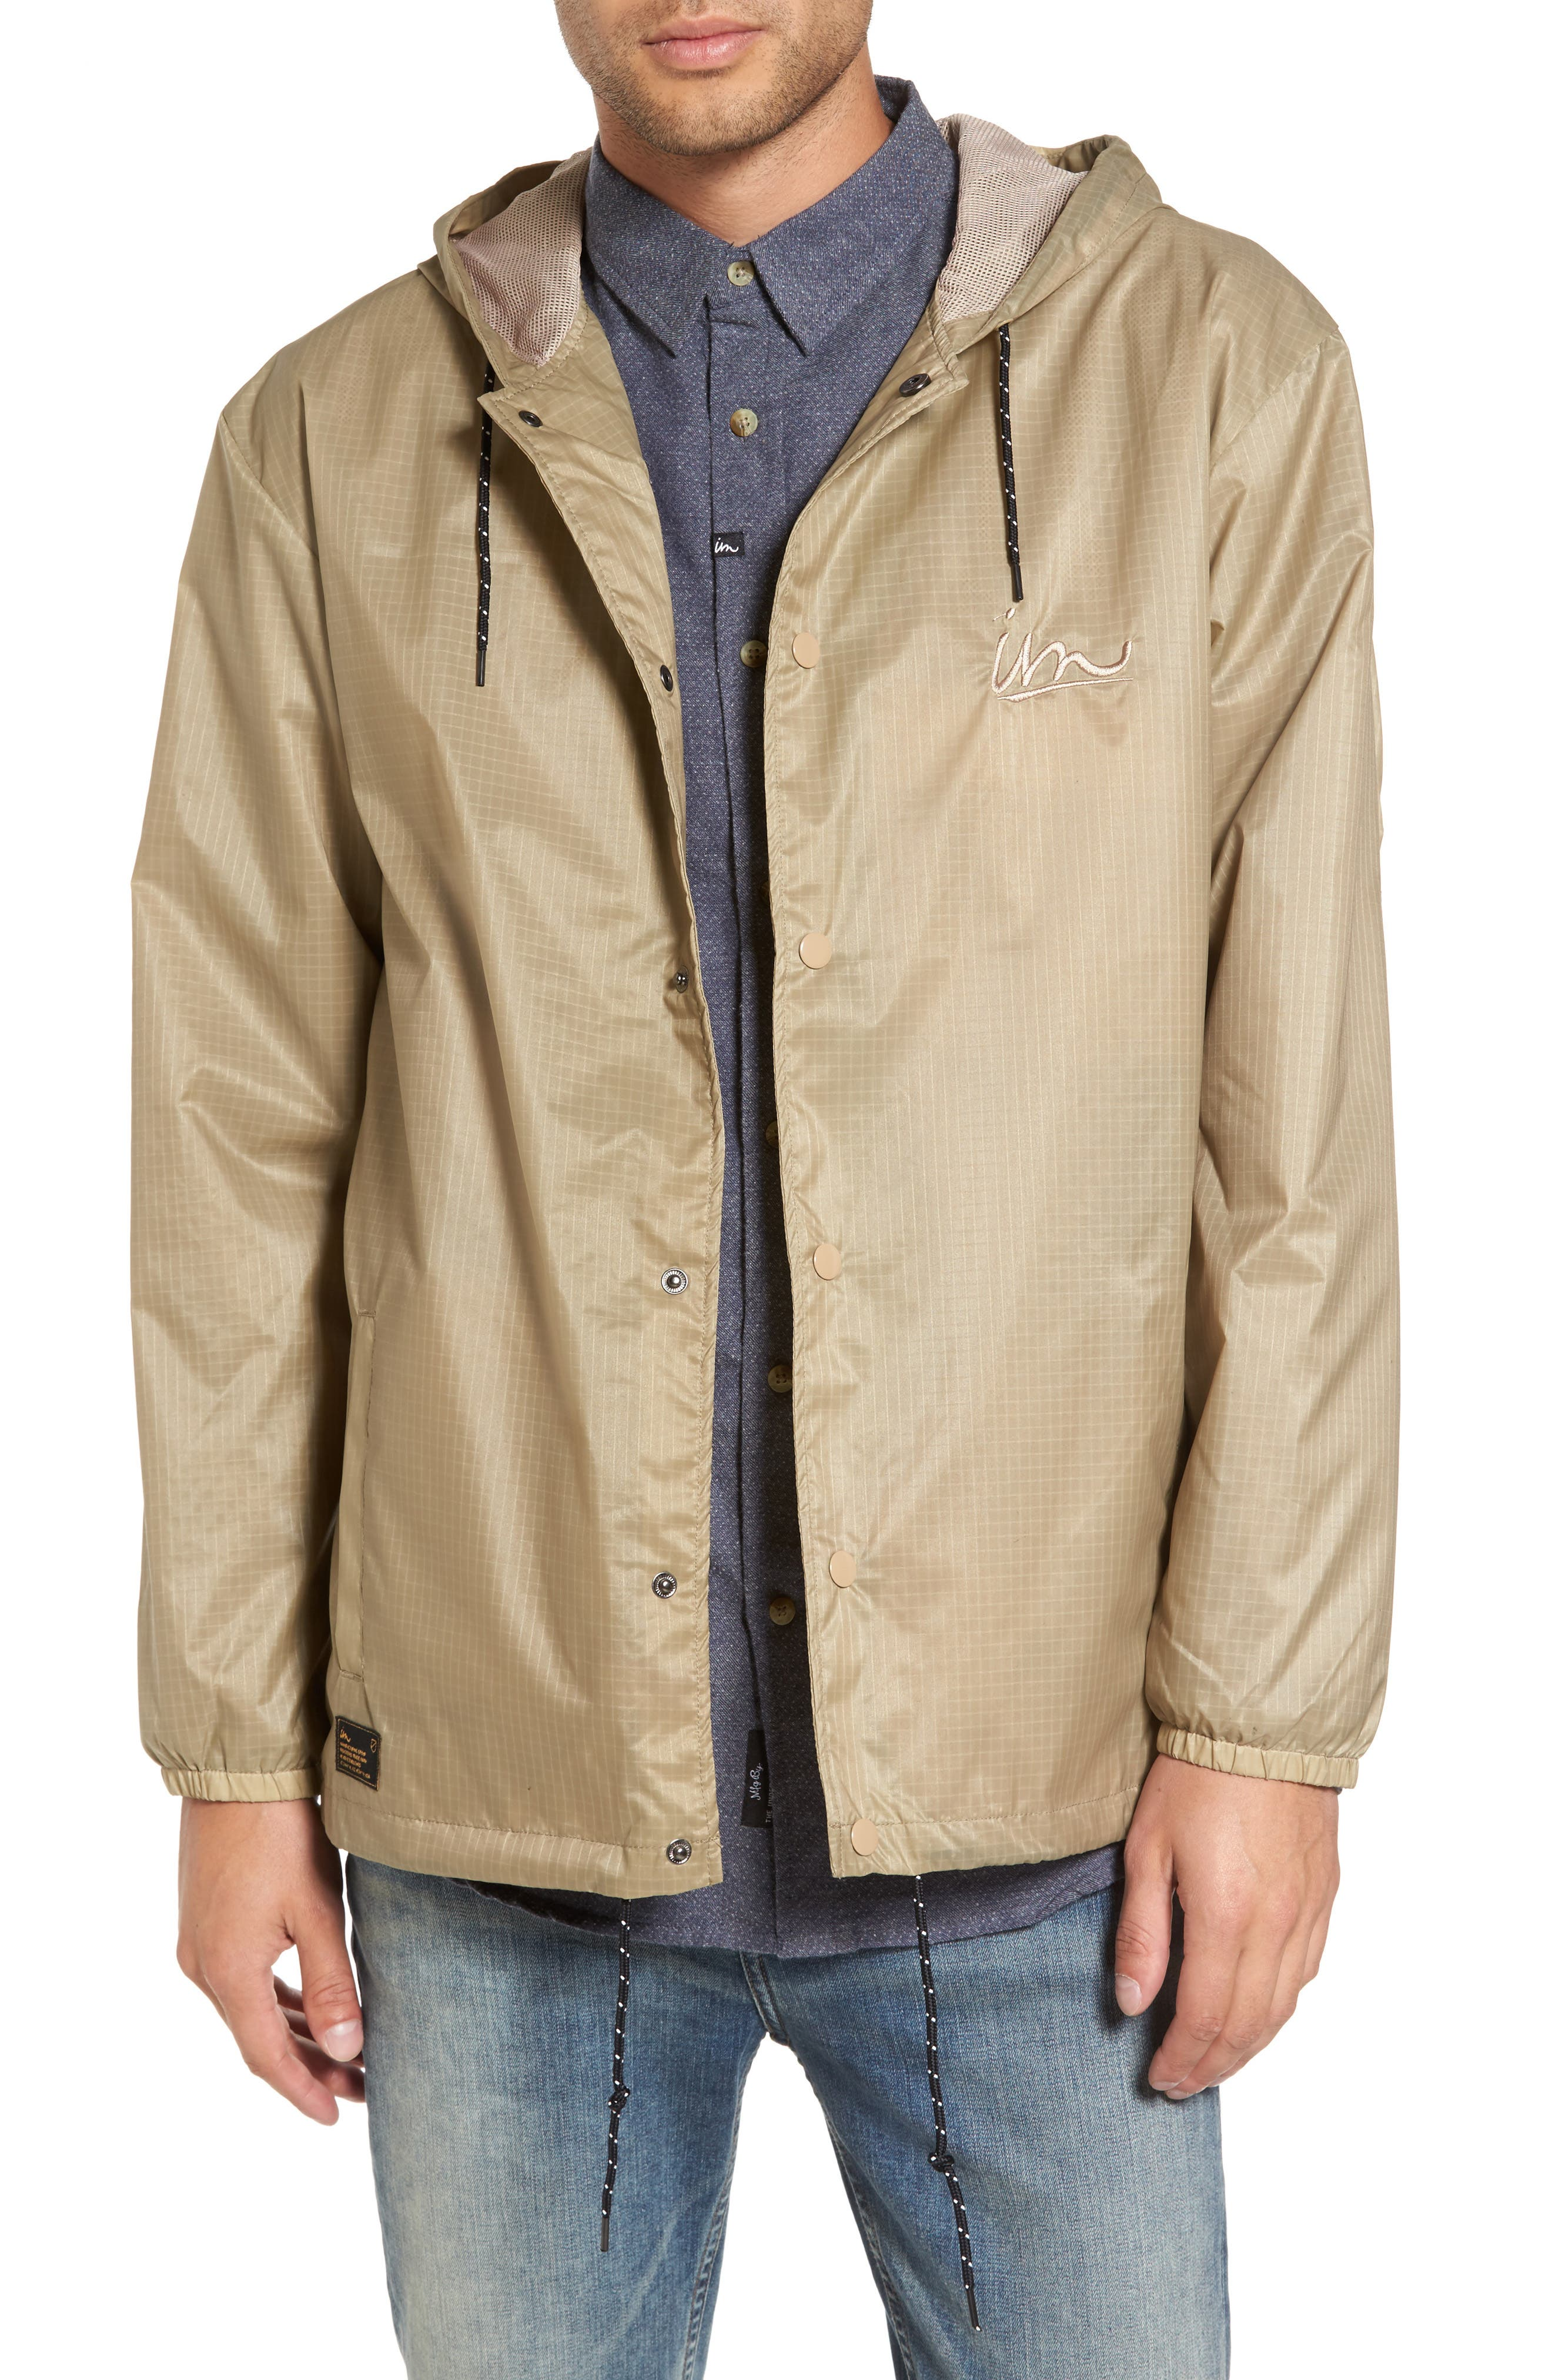 Alternate Image 1 Selected - Imperial Motion NCT Vulcan Coach's Jacket